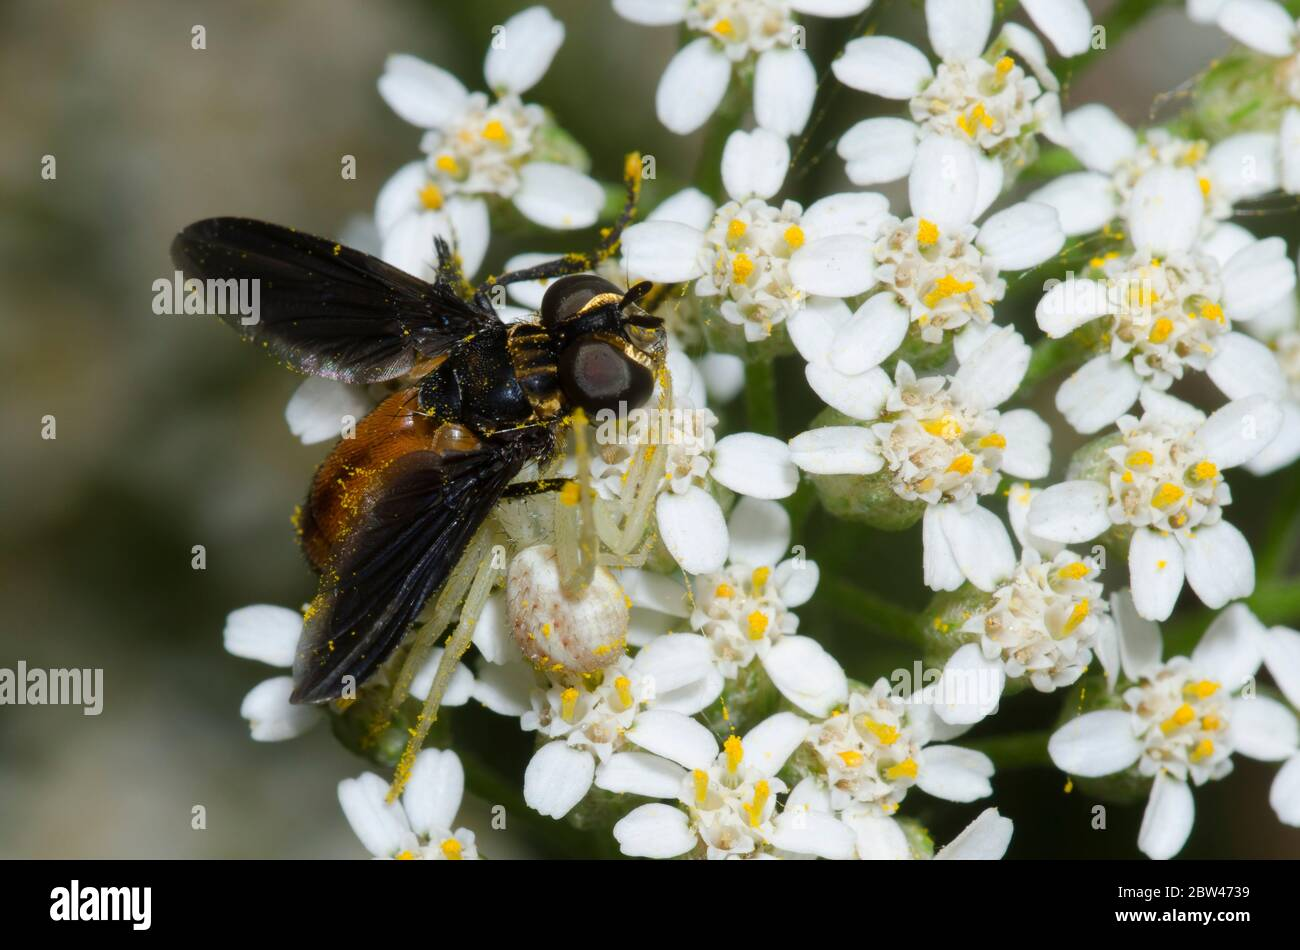 Crab Spider, Mecaphesa sp., with Feather-legged Fly, Trichopoda sp., prey on yarrow, Achillea millefolium Stock Photo